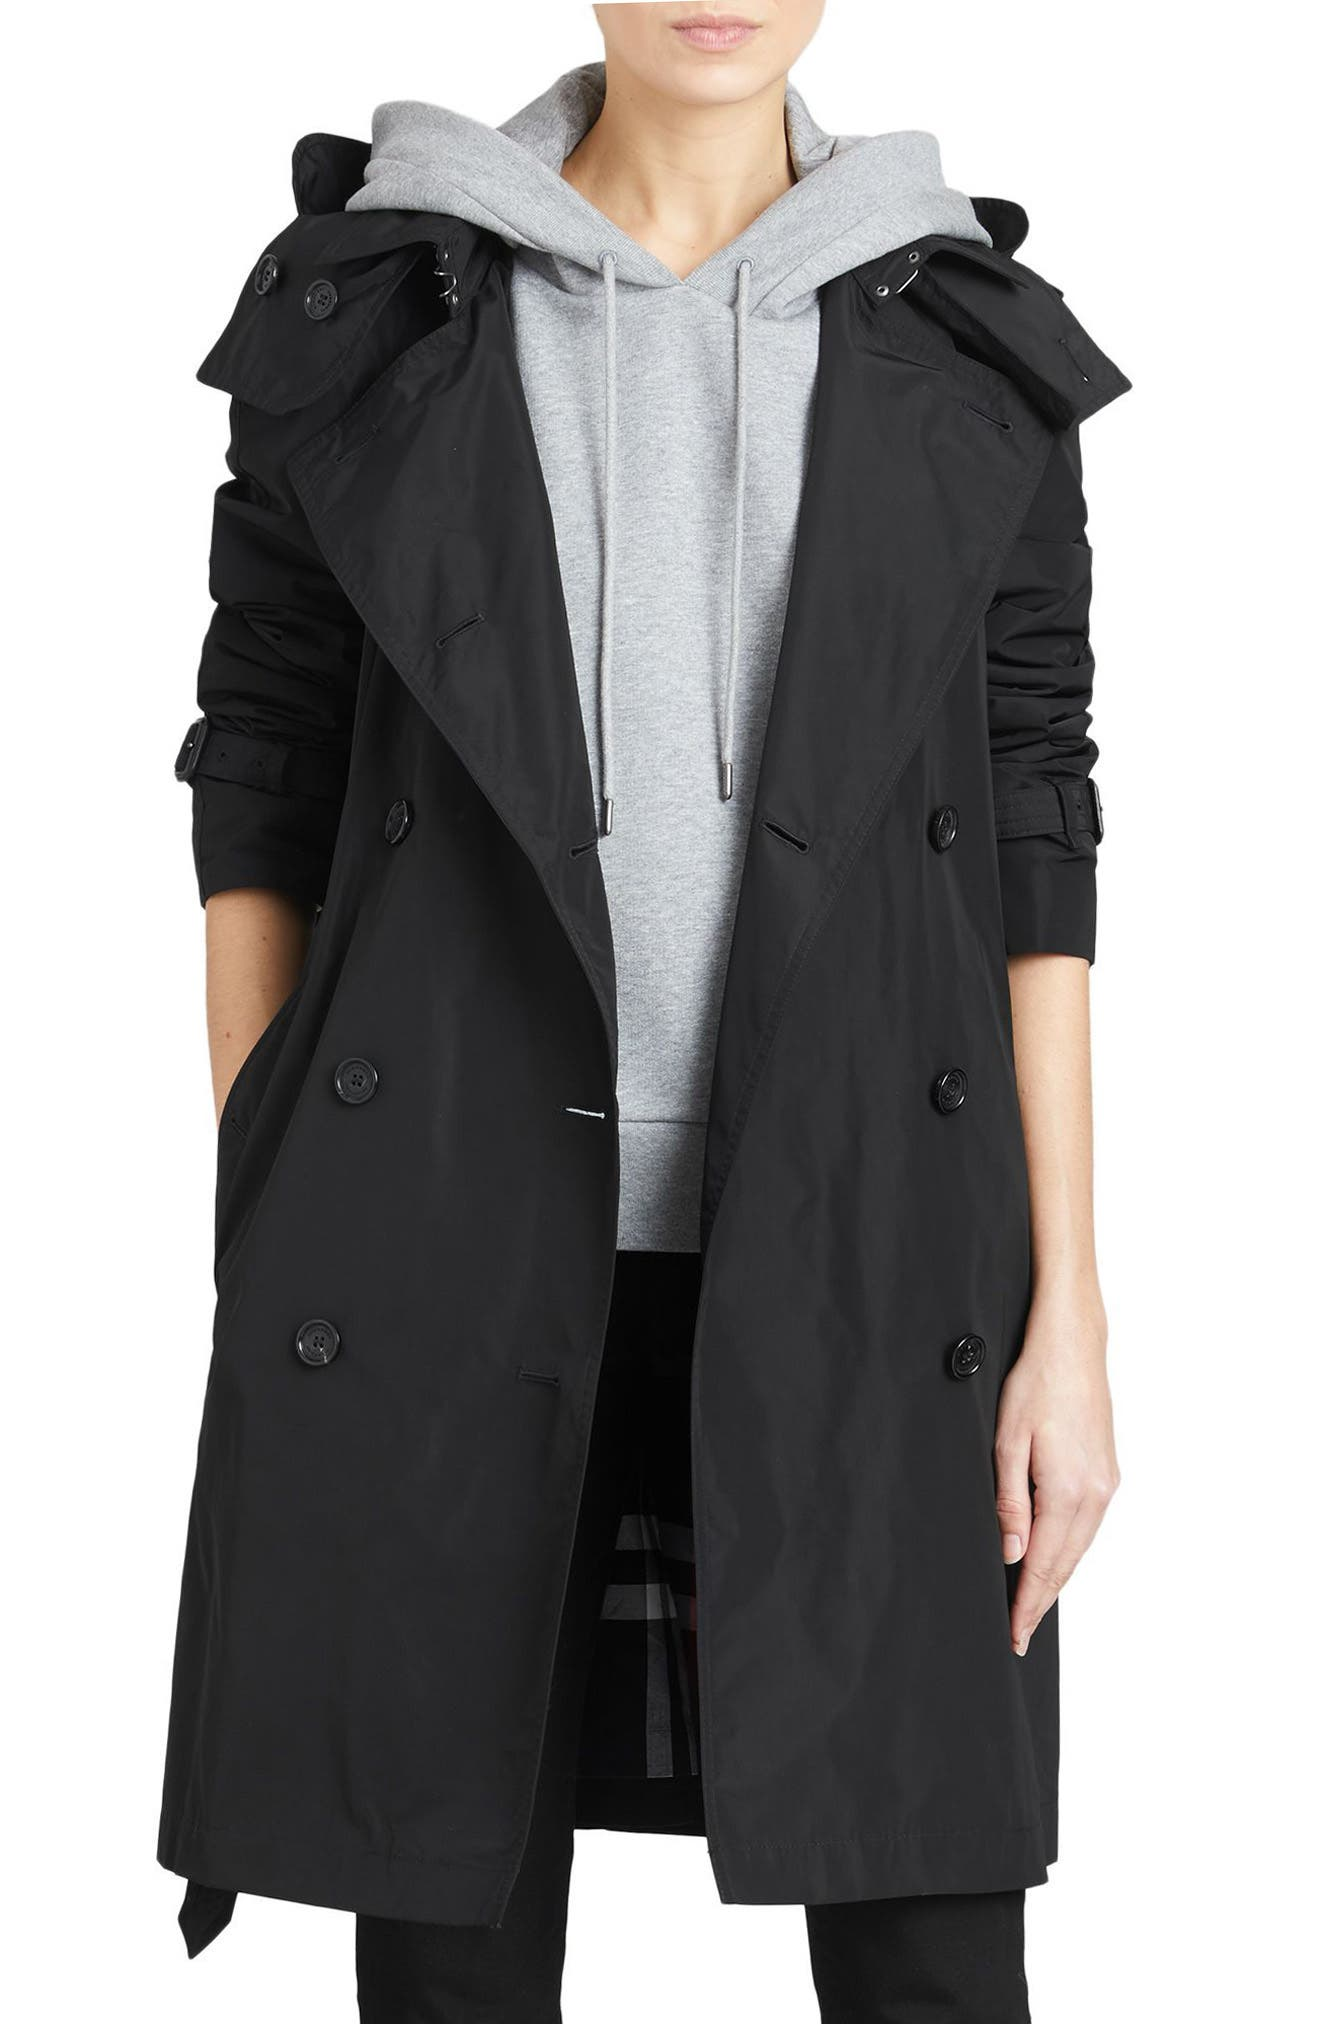 BURBERRY,                             Amberford Taffeta Trench Coat with Detachable Hood,                             Main thumbnail 1, color,                             BLACK